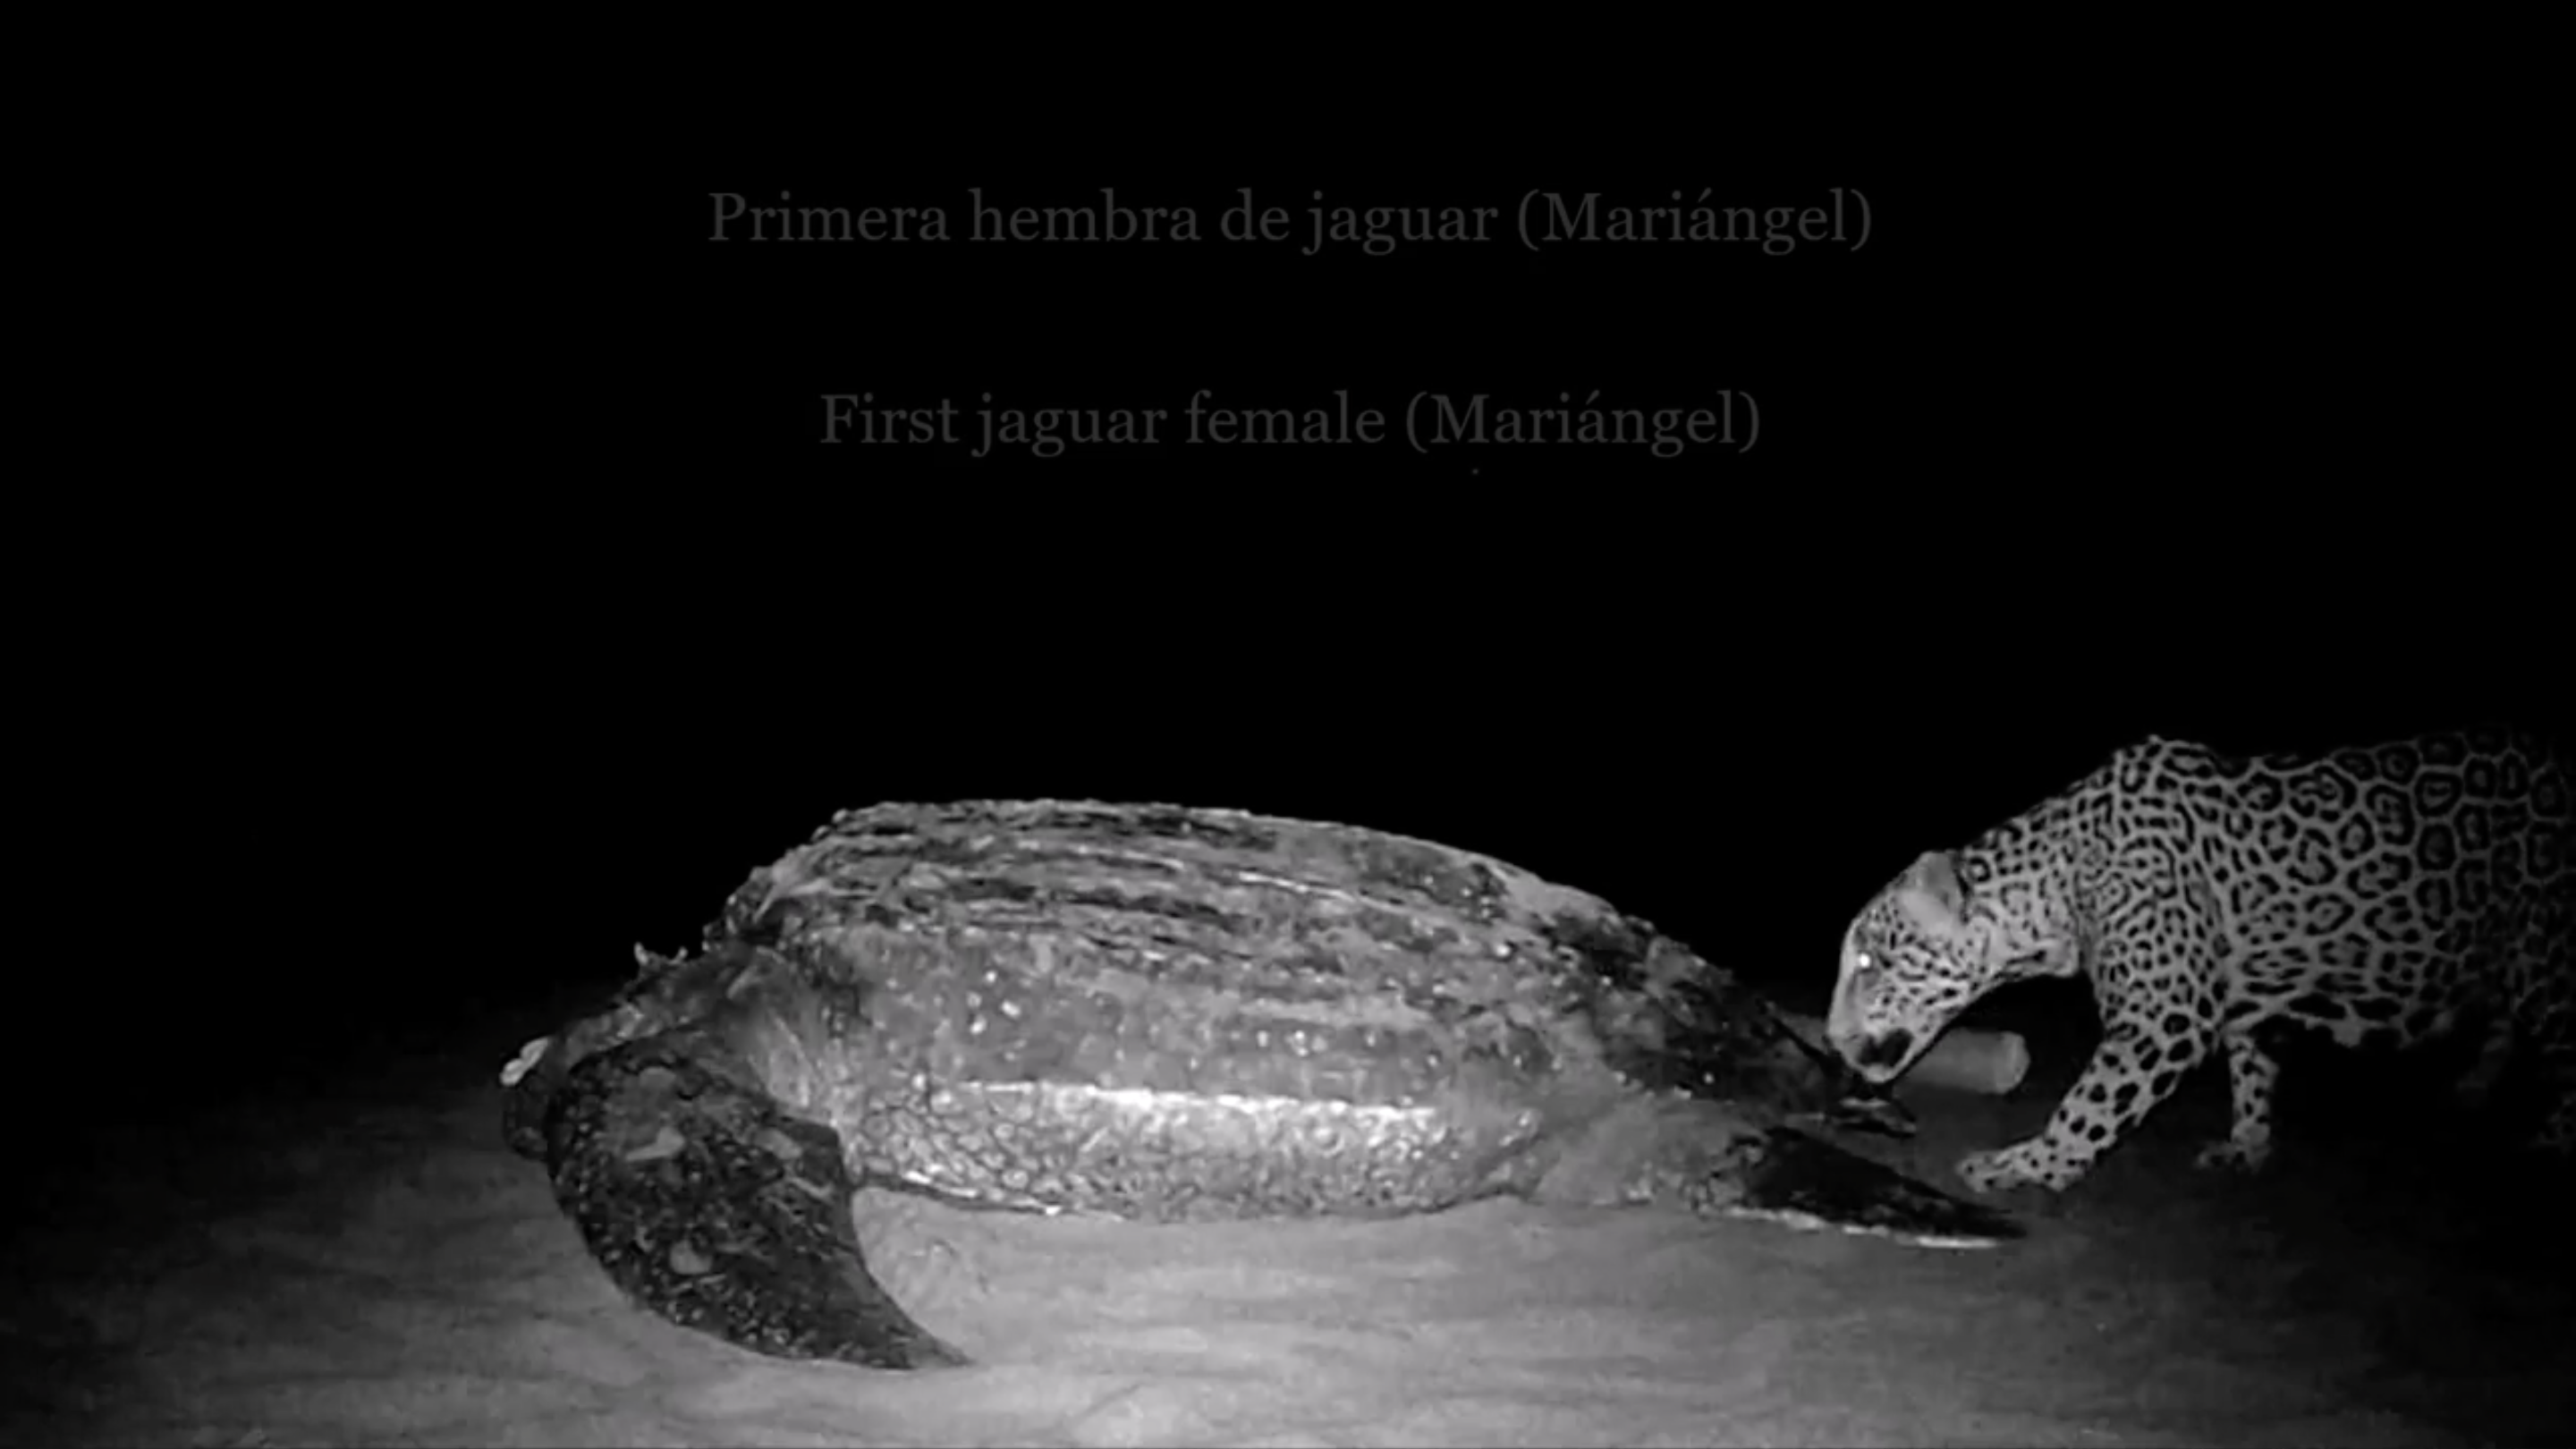 Video Shows Rare Interaction Between Jaguars and Endangered Pacific Leatherback Sea Turtle